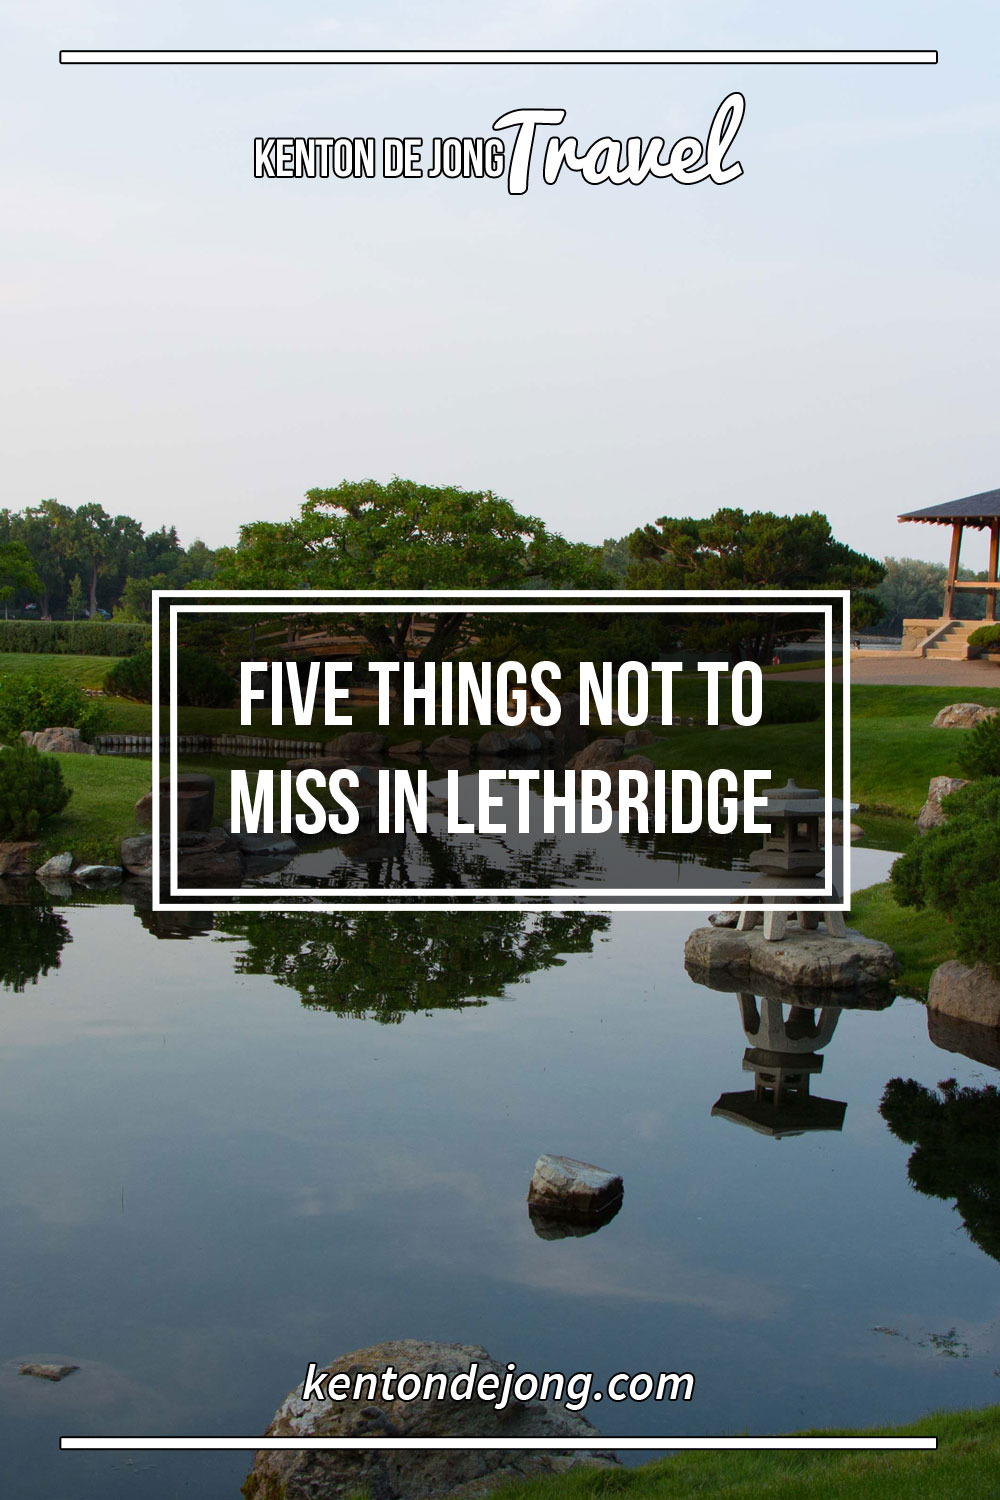 Five Things Not to Miss in Lethbridge